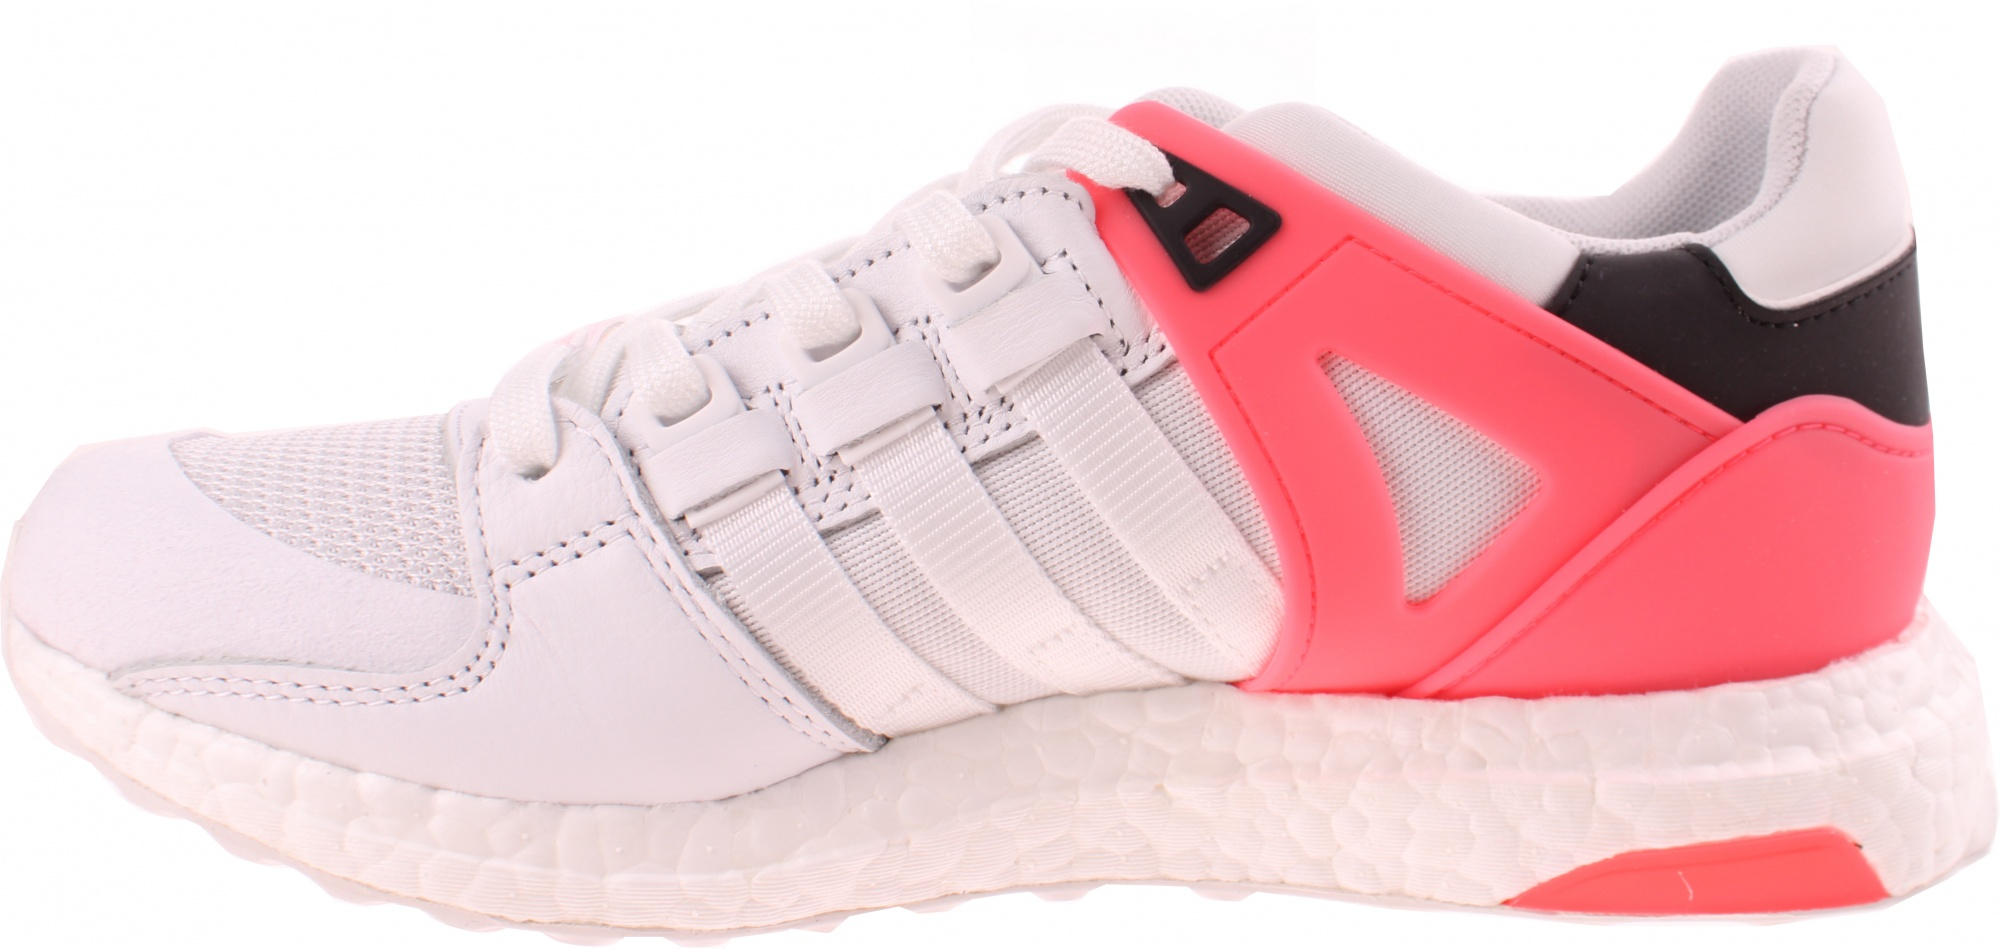 info for 0b162 bffcb ... adidas sneakers EQT Support Ultra men white ...